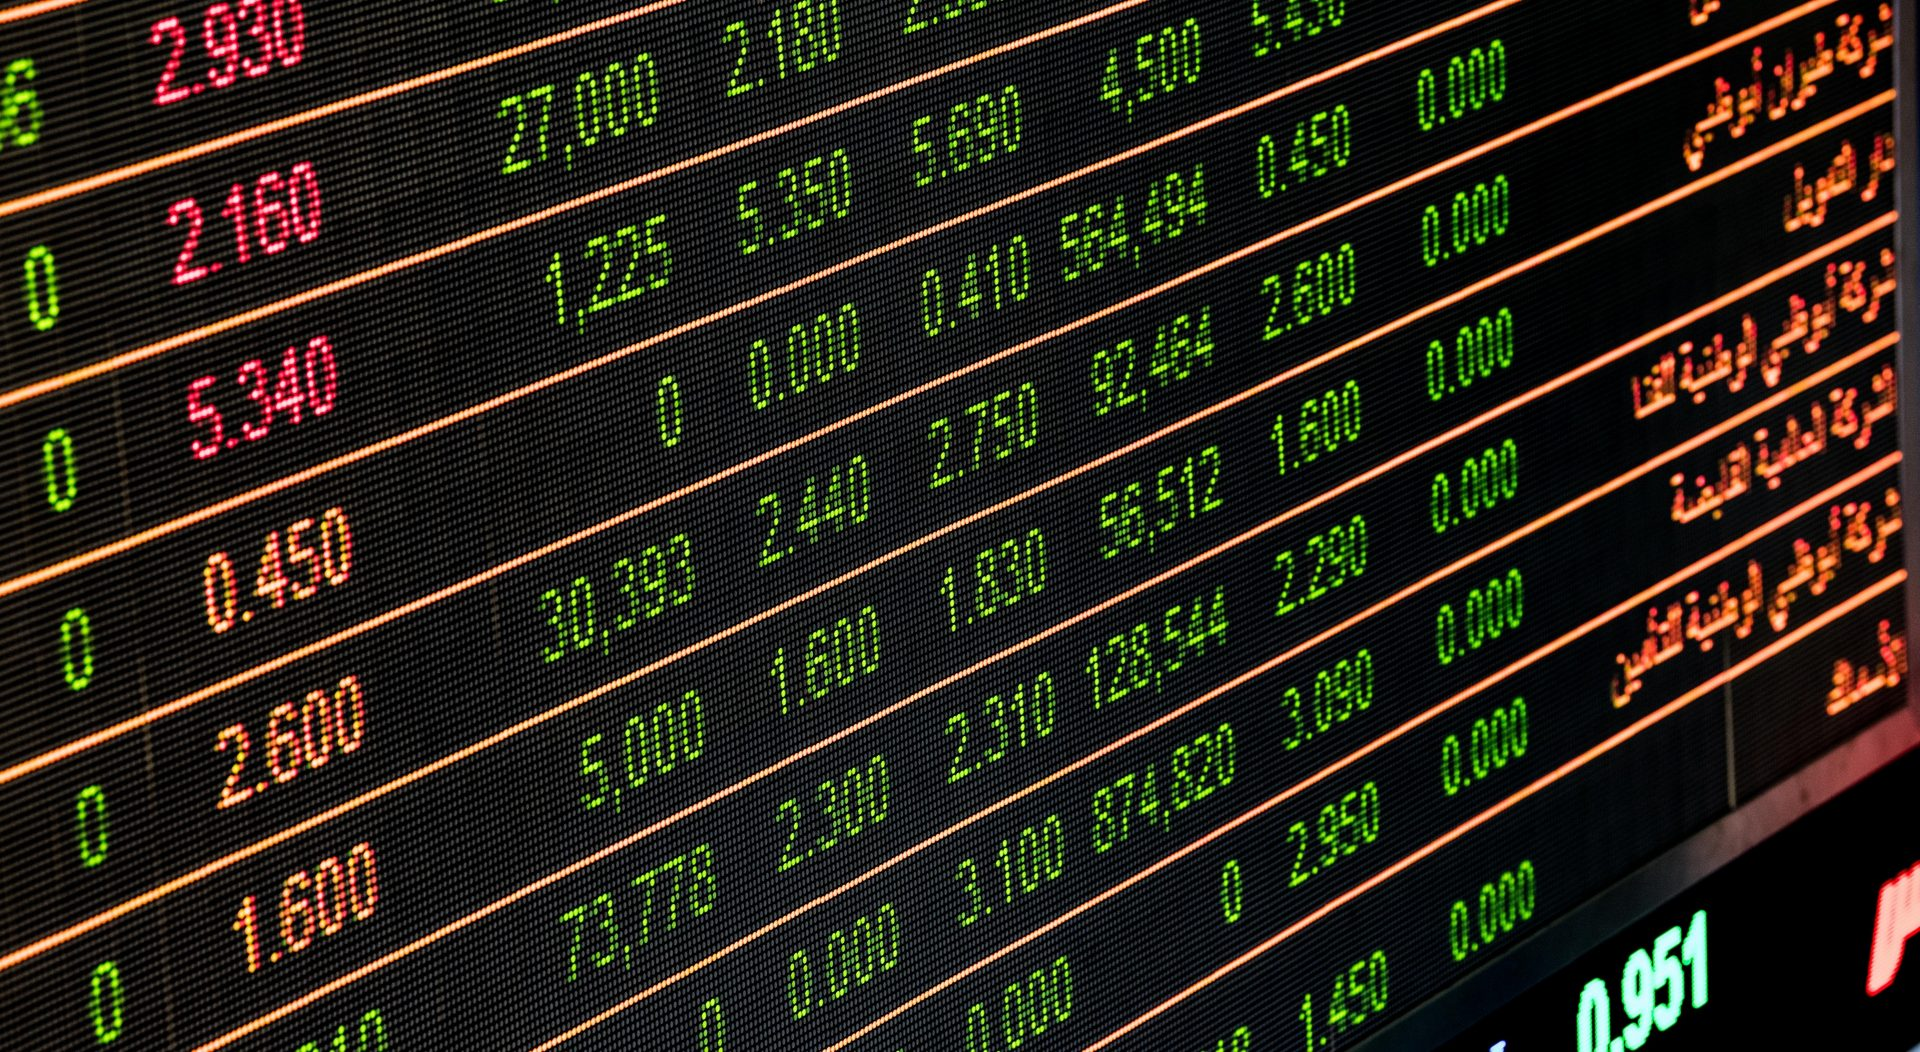 Stock ticker displaying several numbers in green, orange, and red